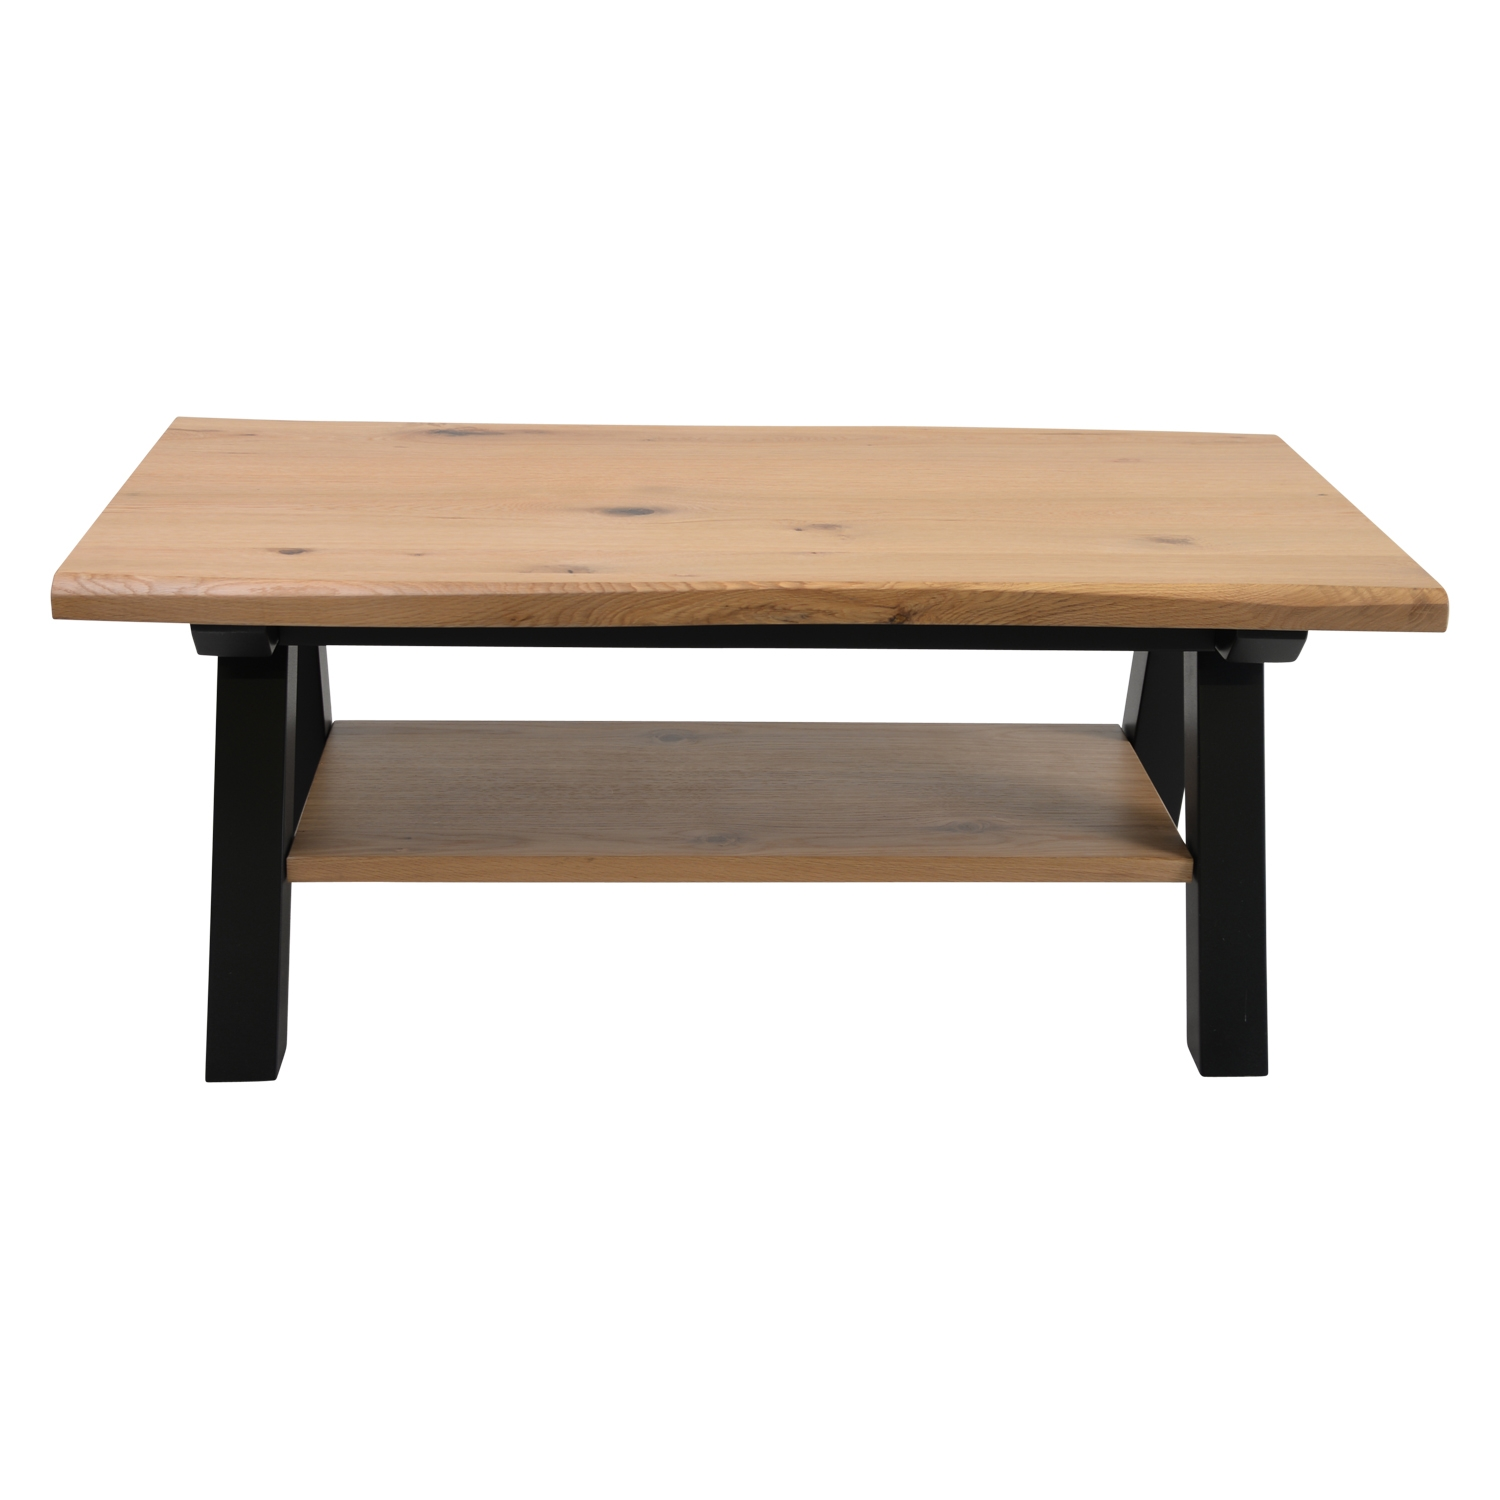 Image of Casa Adelaide Coffee Table